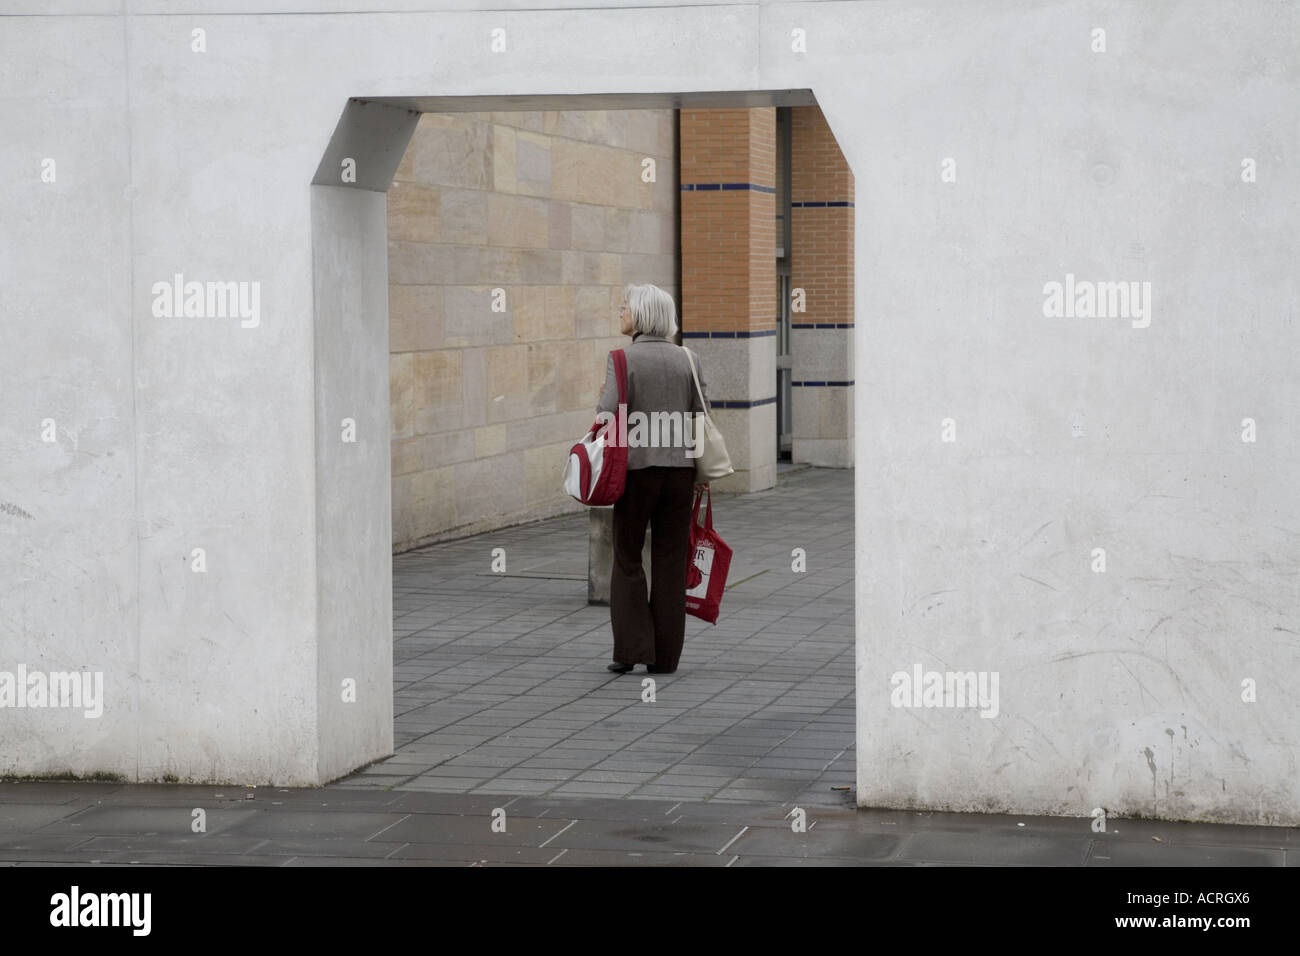 Germanisches Nationalmuseum,  Way of Human Rights, Nuremberg, Germany - Stock Image